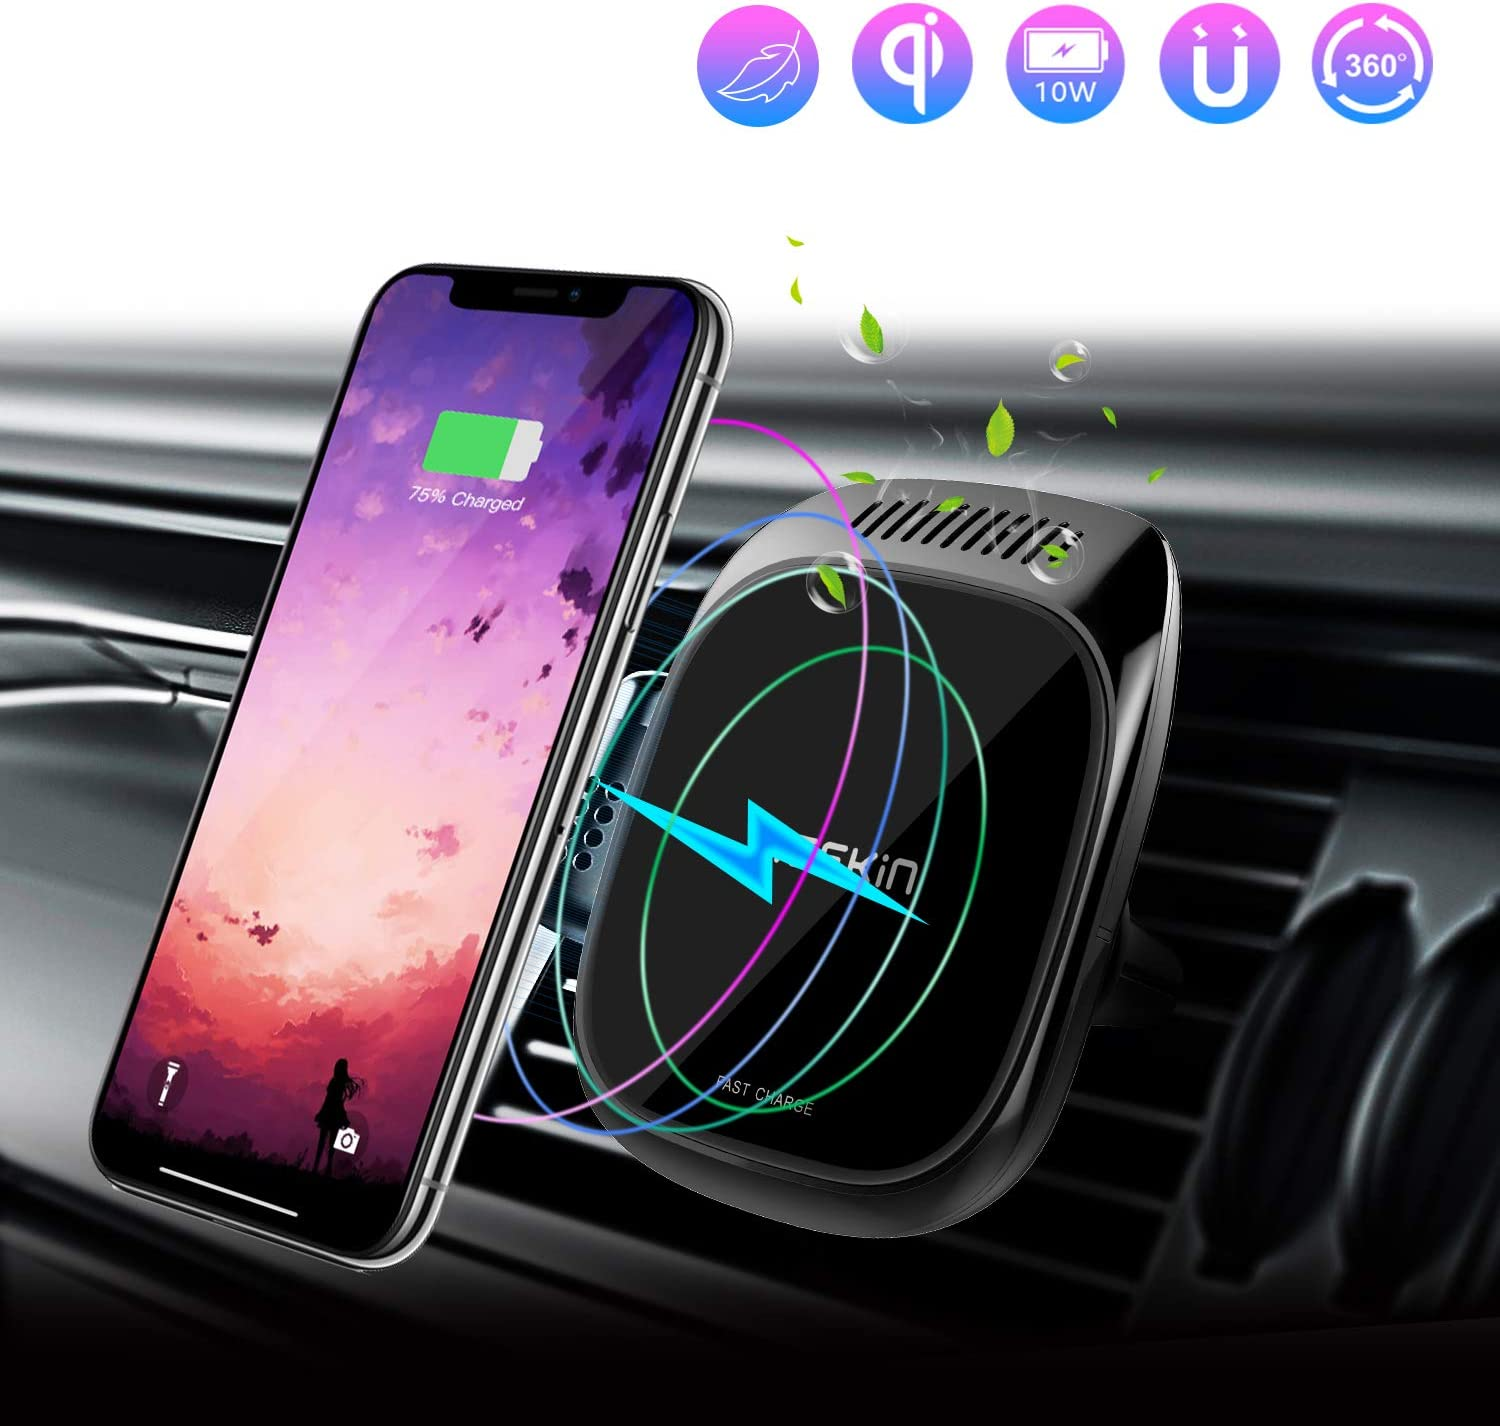 Nillkin Wireless Car Charger Mount, 3 in 1 Rotatable Magnetic Charging Car Phone Holder with Aroma Diffuser 5W/ 7.5W/10W Qi Fast Wireless Charger for iPhone XR/XS/X/8/8 Plus Galaxy S10/S10+/S9/S9+/S8